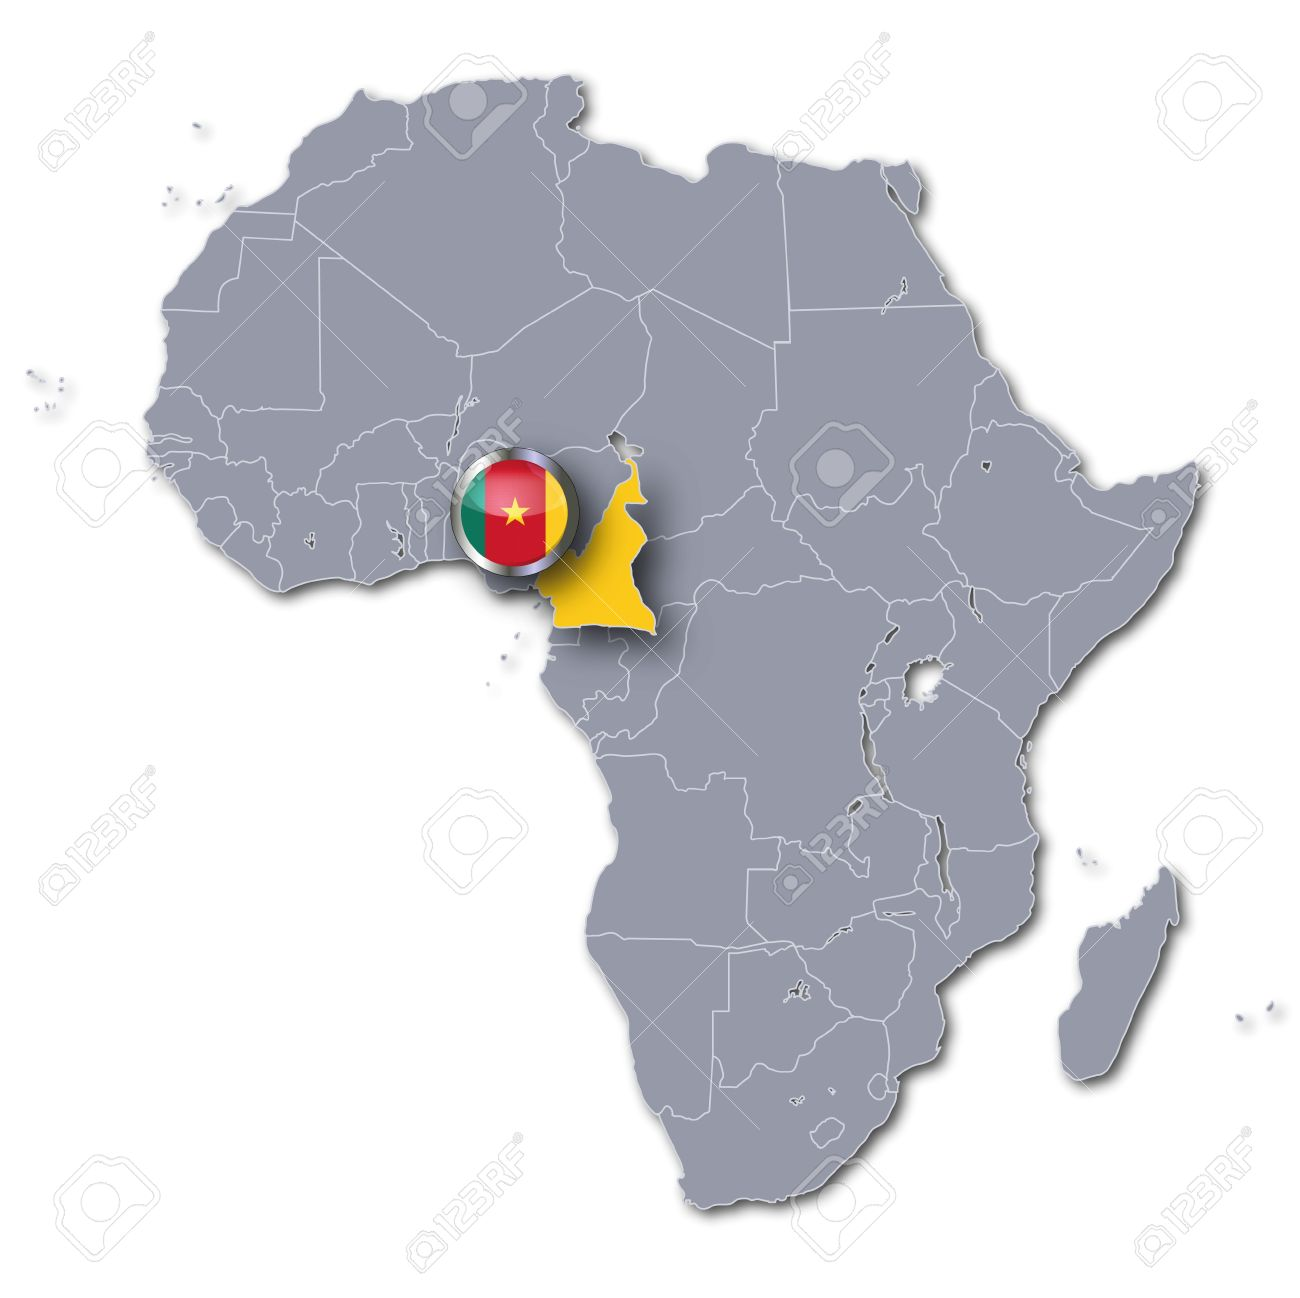 Map Of Africa Cameroon.Africa Map Cameroon